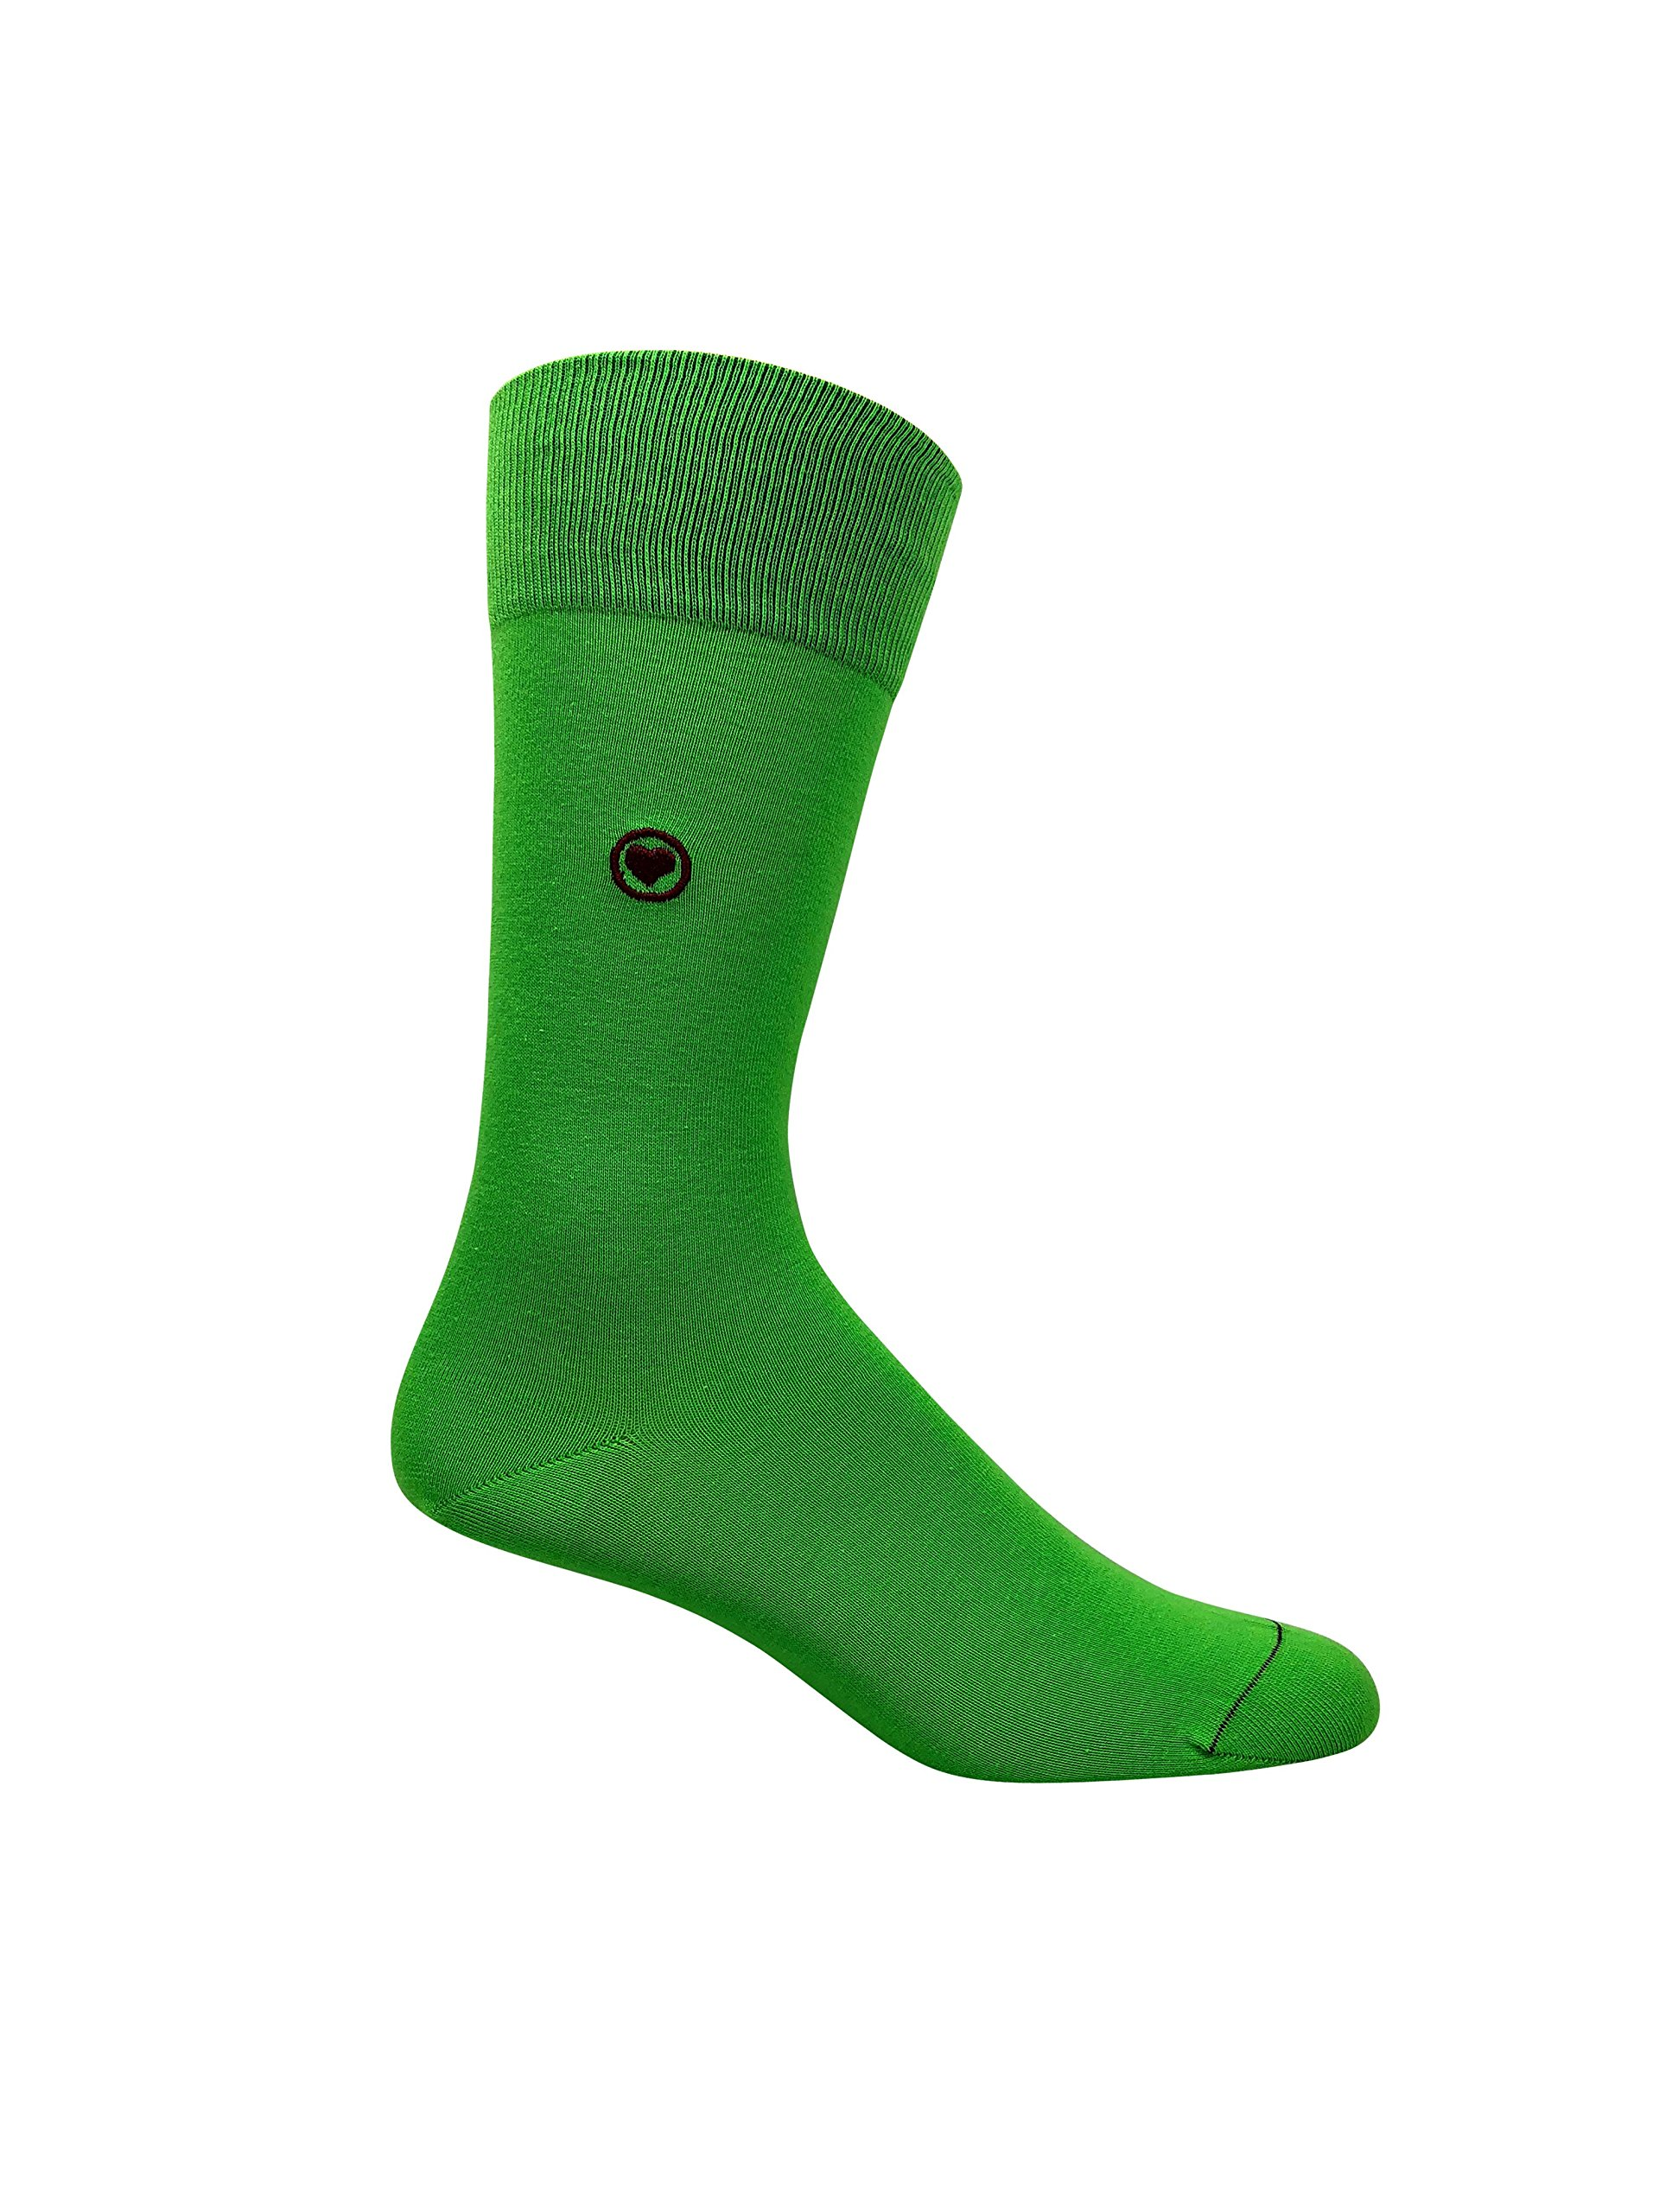 Premium Men's Green Dress Socks. 98% Organic cotton. Highly breathable with seamless toes